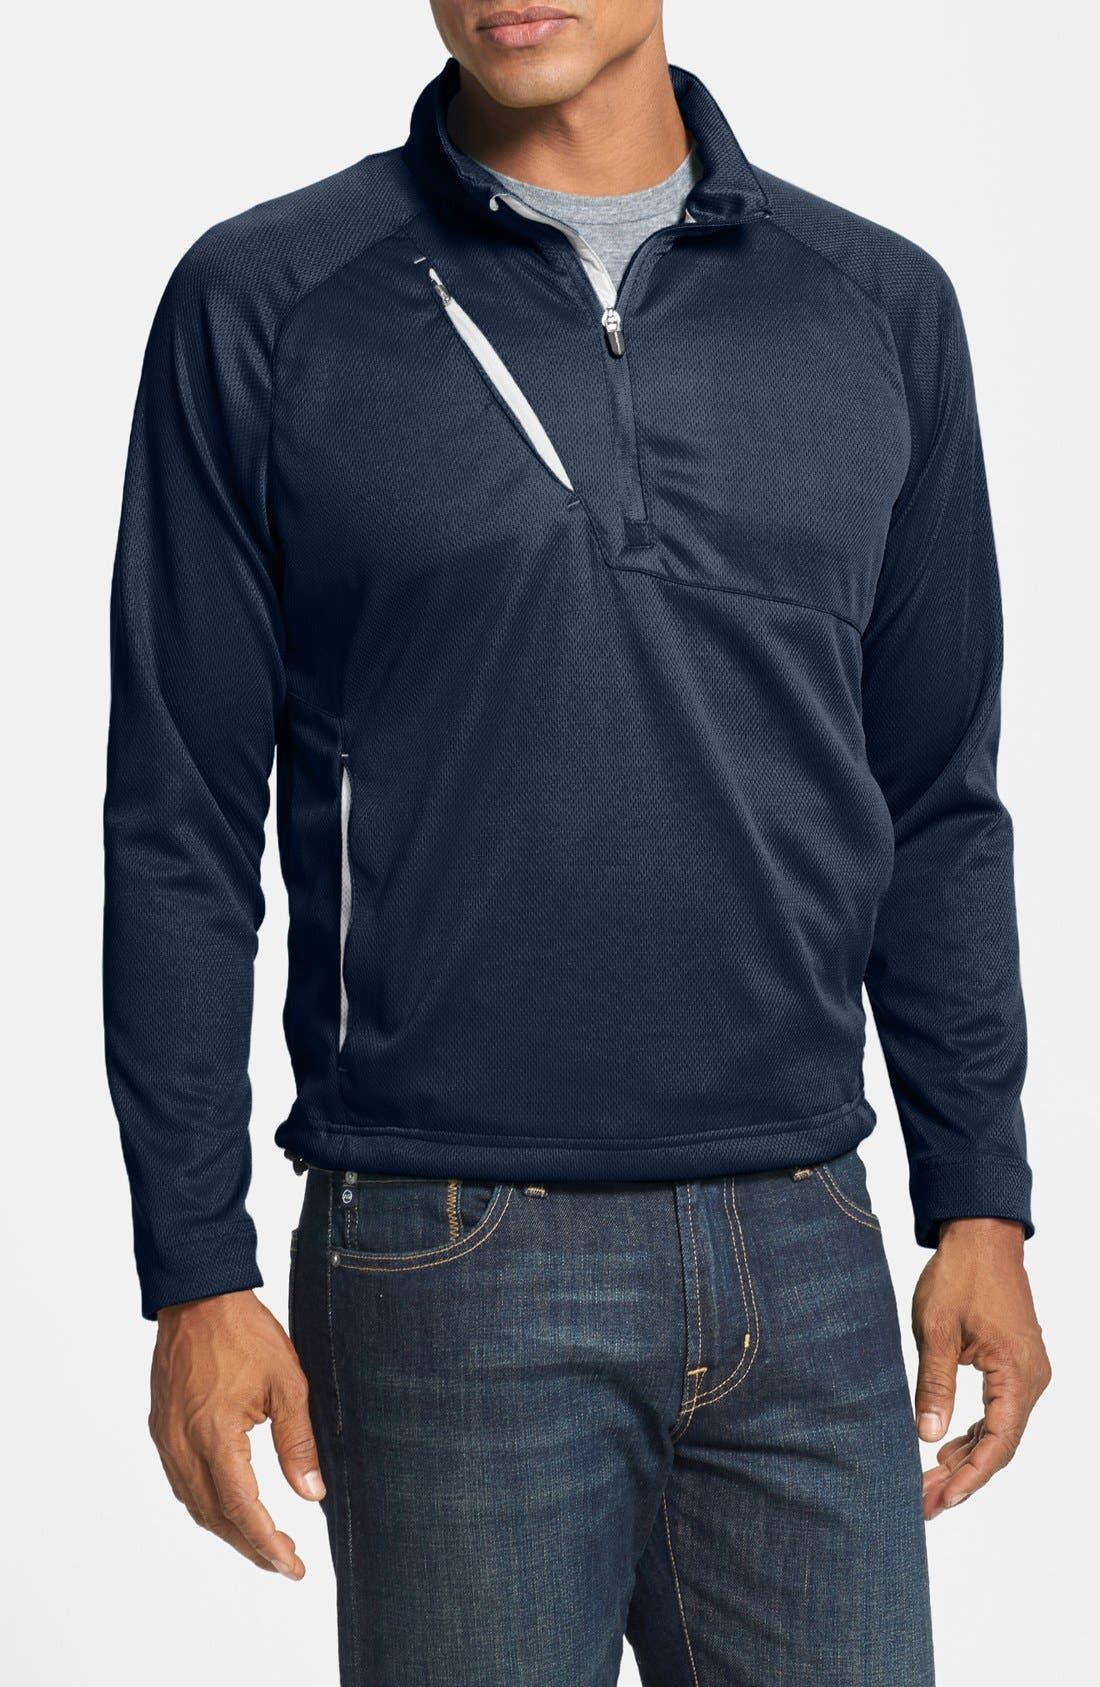 Alternate Image 1 Selected - Zero Restriction 'Wedge' Quarter Zip Pullover